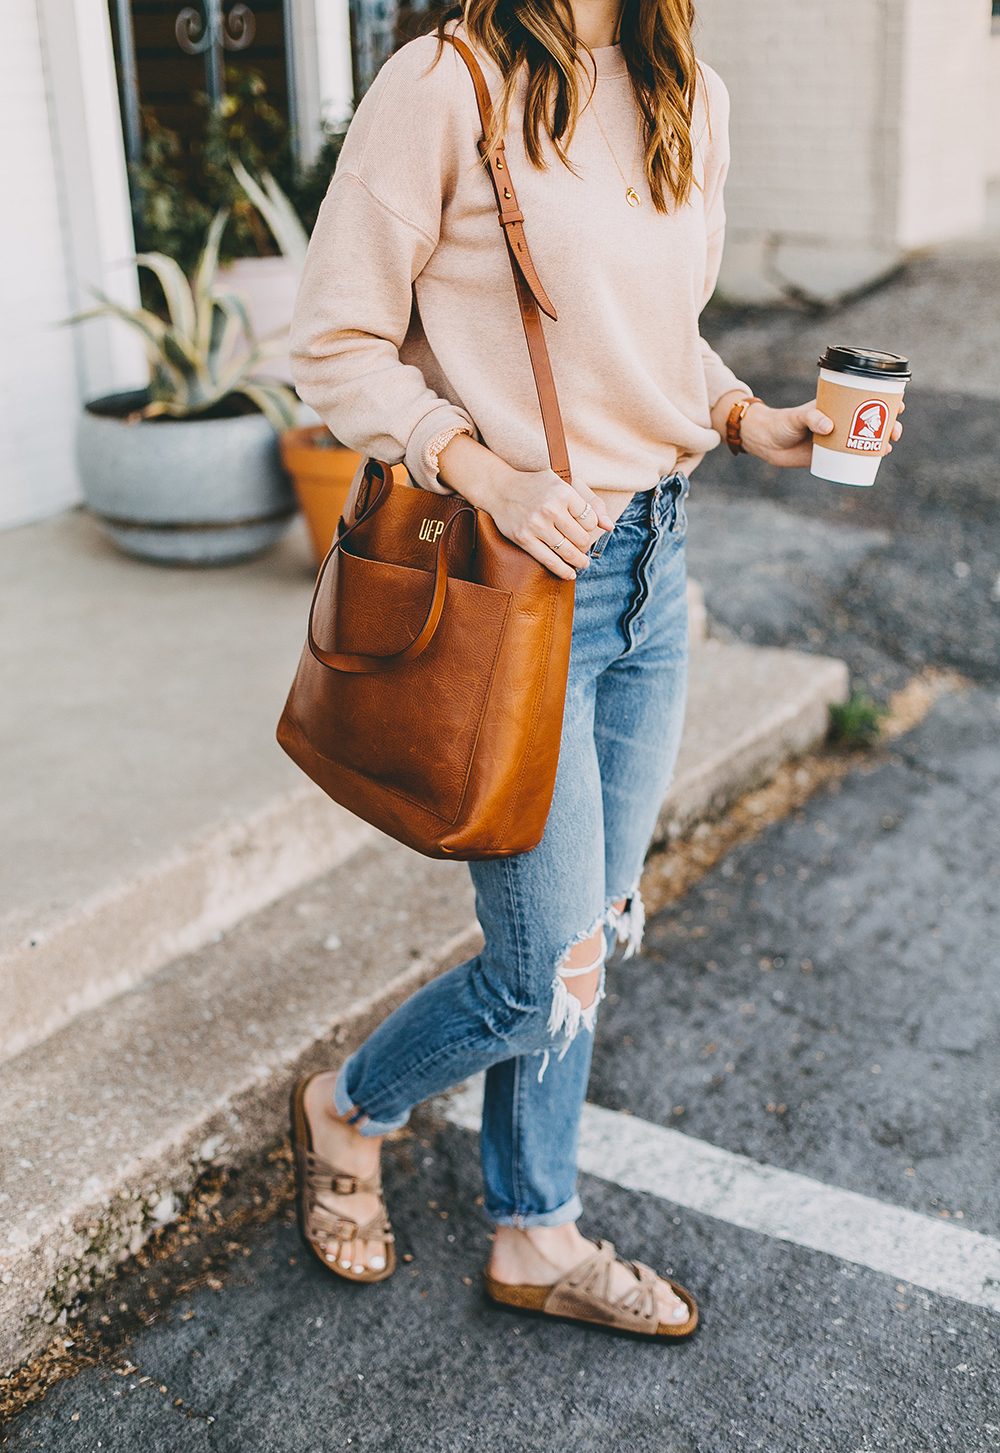 livvyland-blog-olivia-watson-austin-texas-fashion-blogger-madewell-peach-sweatshirt-medium-transport-tote-levis-501-jeans-13